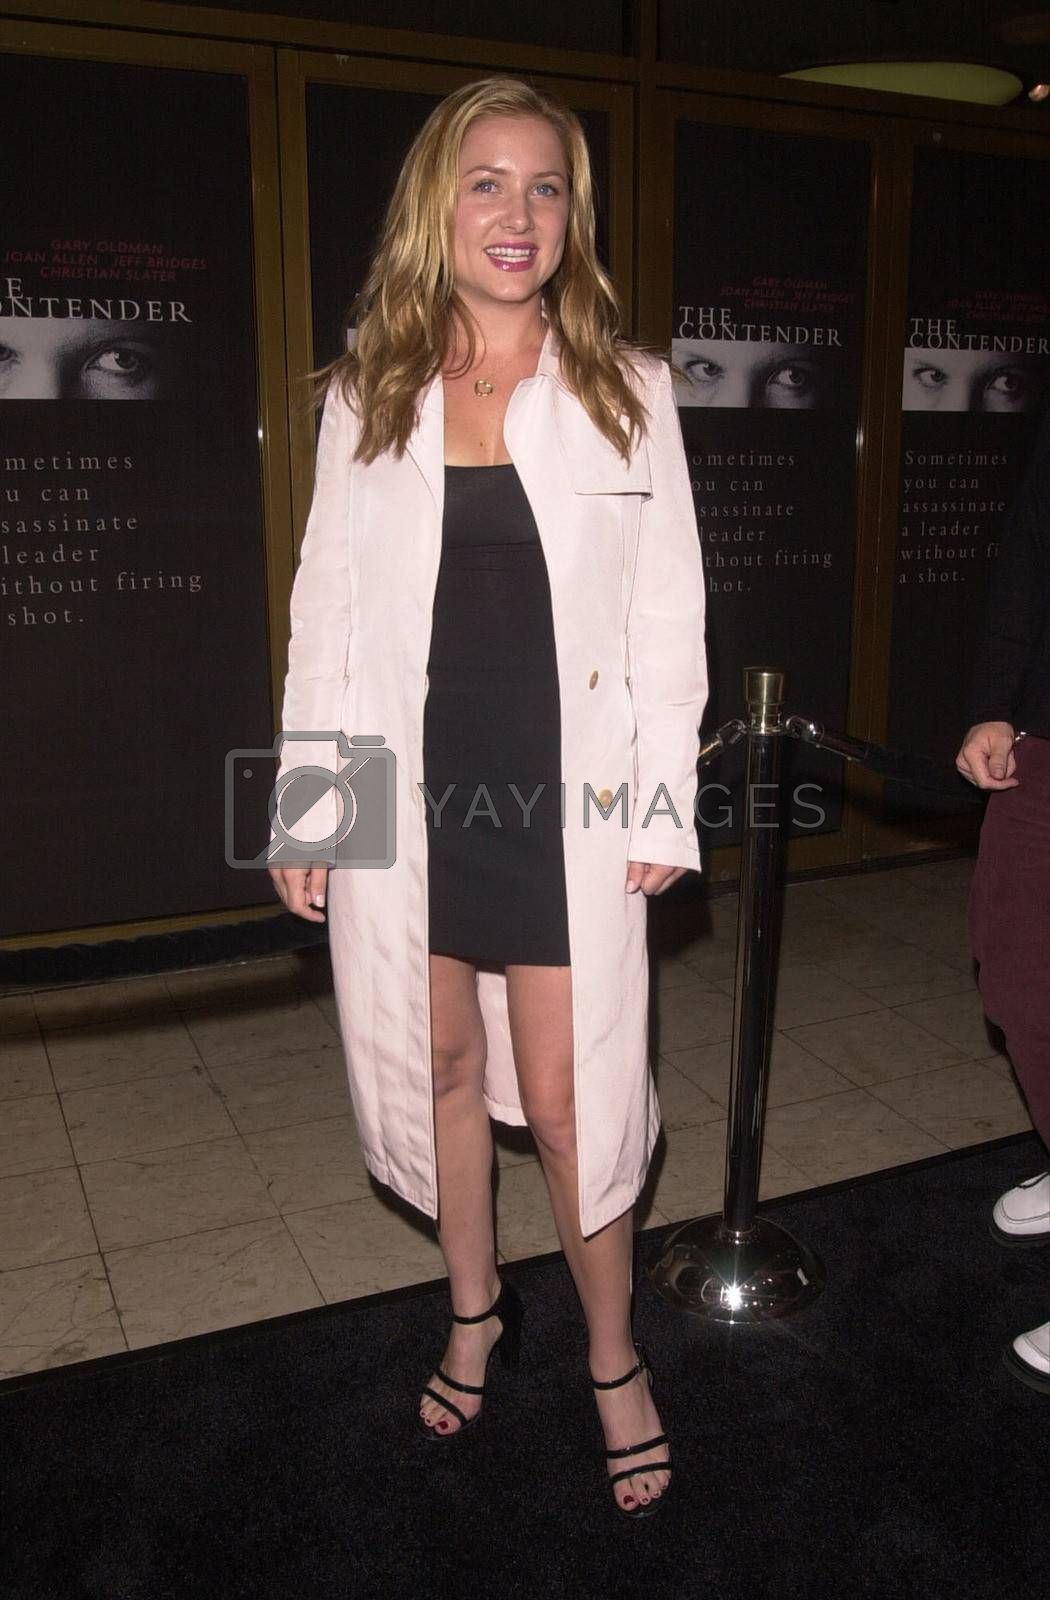 """Jessica Capshaw at the premiere of Dreamworks """"The Contender"""" in Westwood, 10-05-00"""